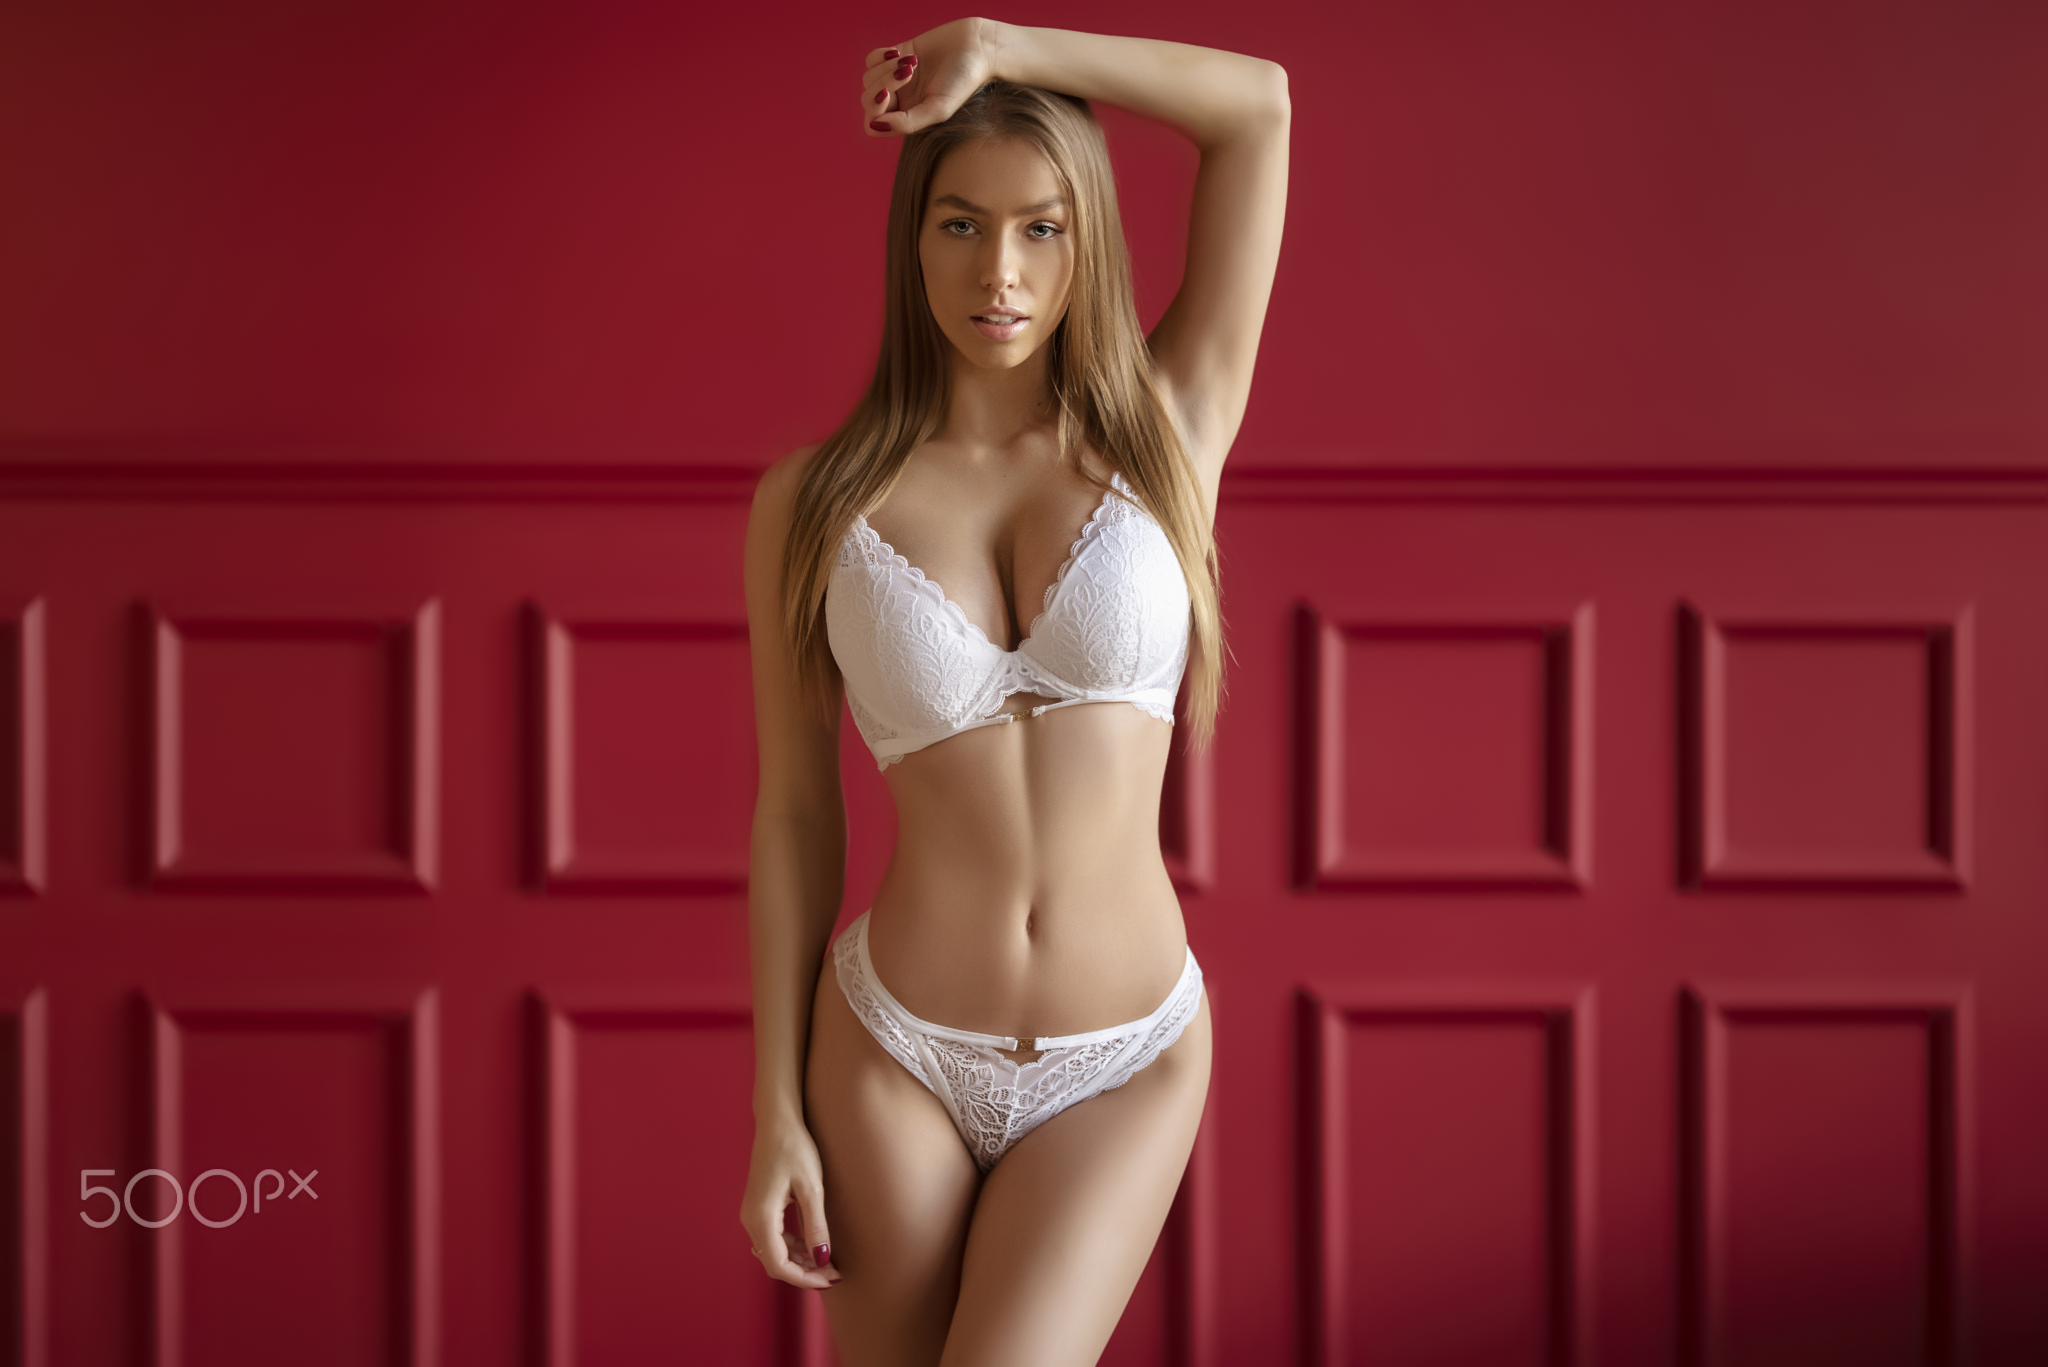 People 2048x1367 Janis Balcuns women blonde long hair straight hair lingerie bra panties hand on head red nails red wall 500px frontal view